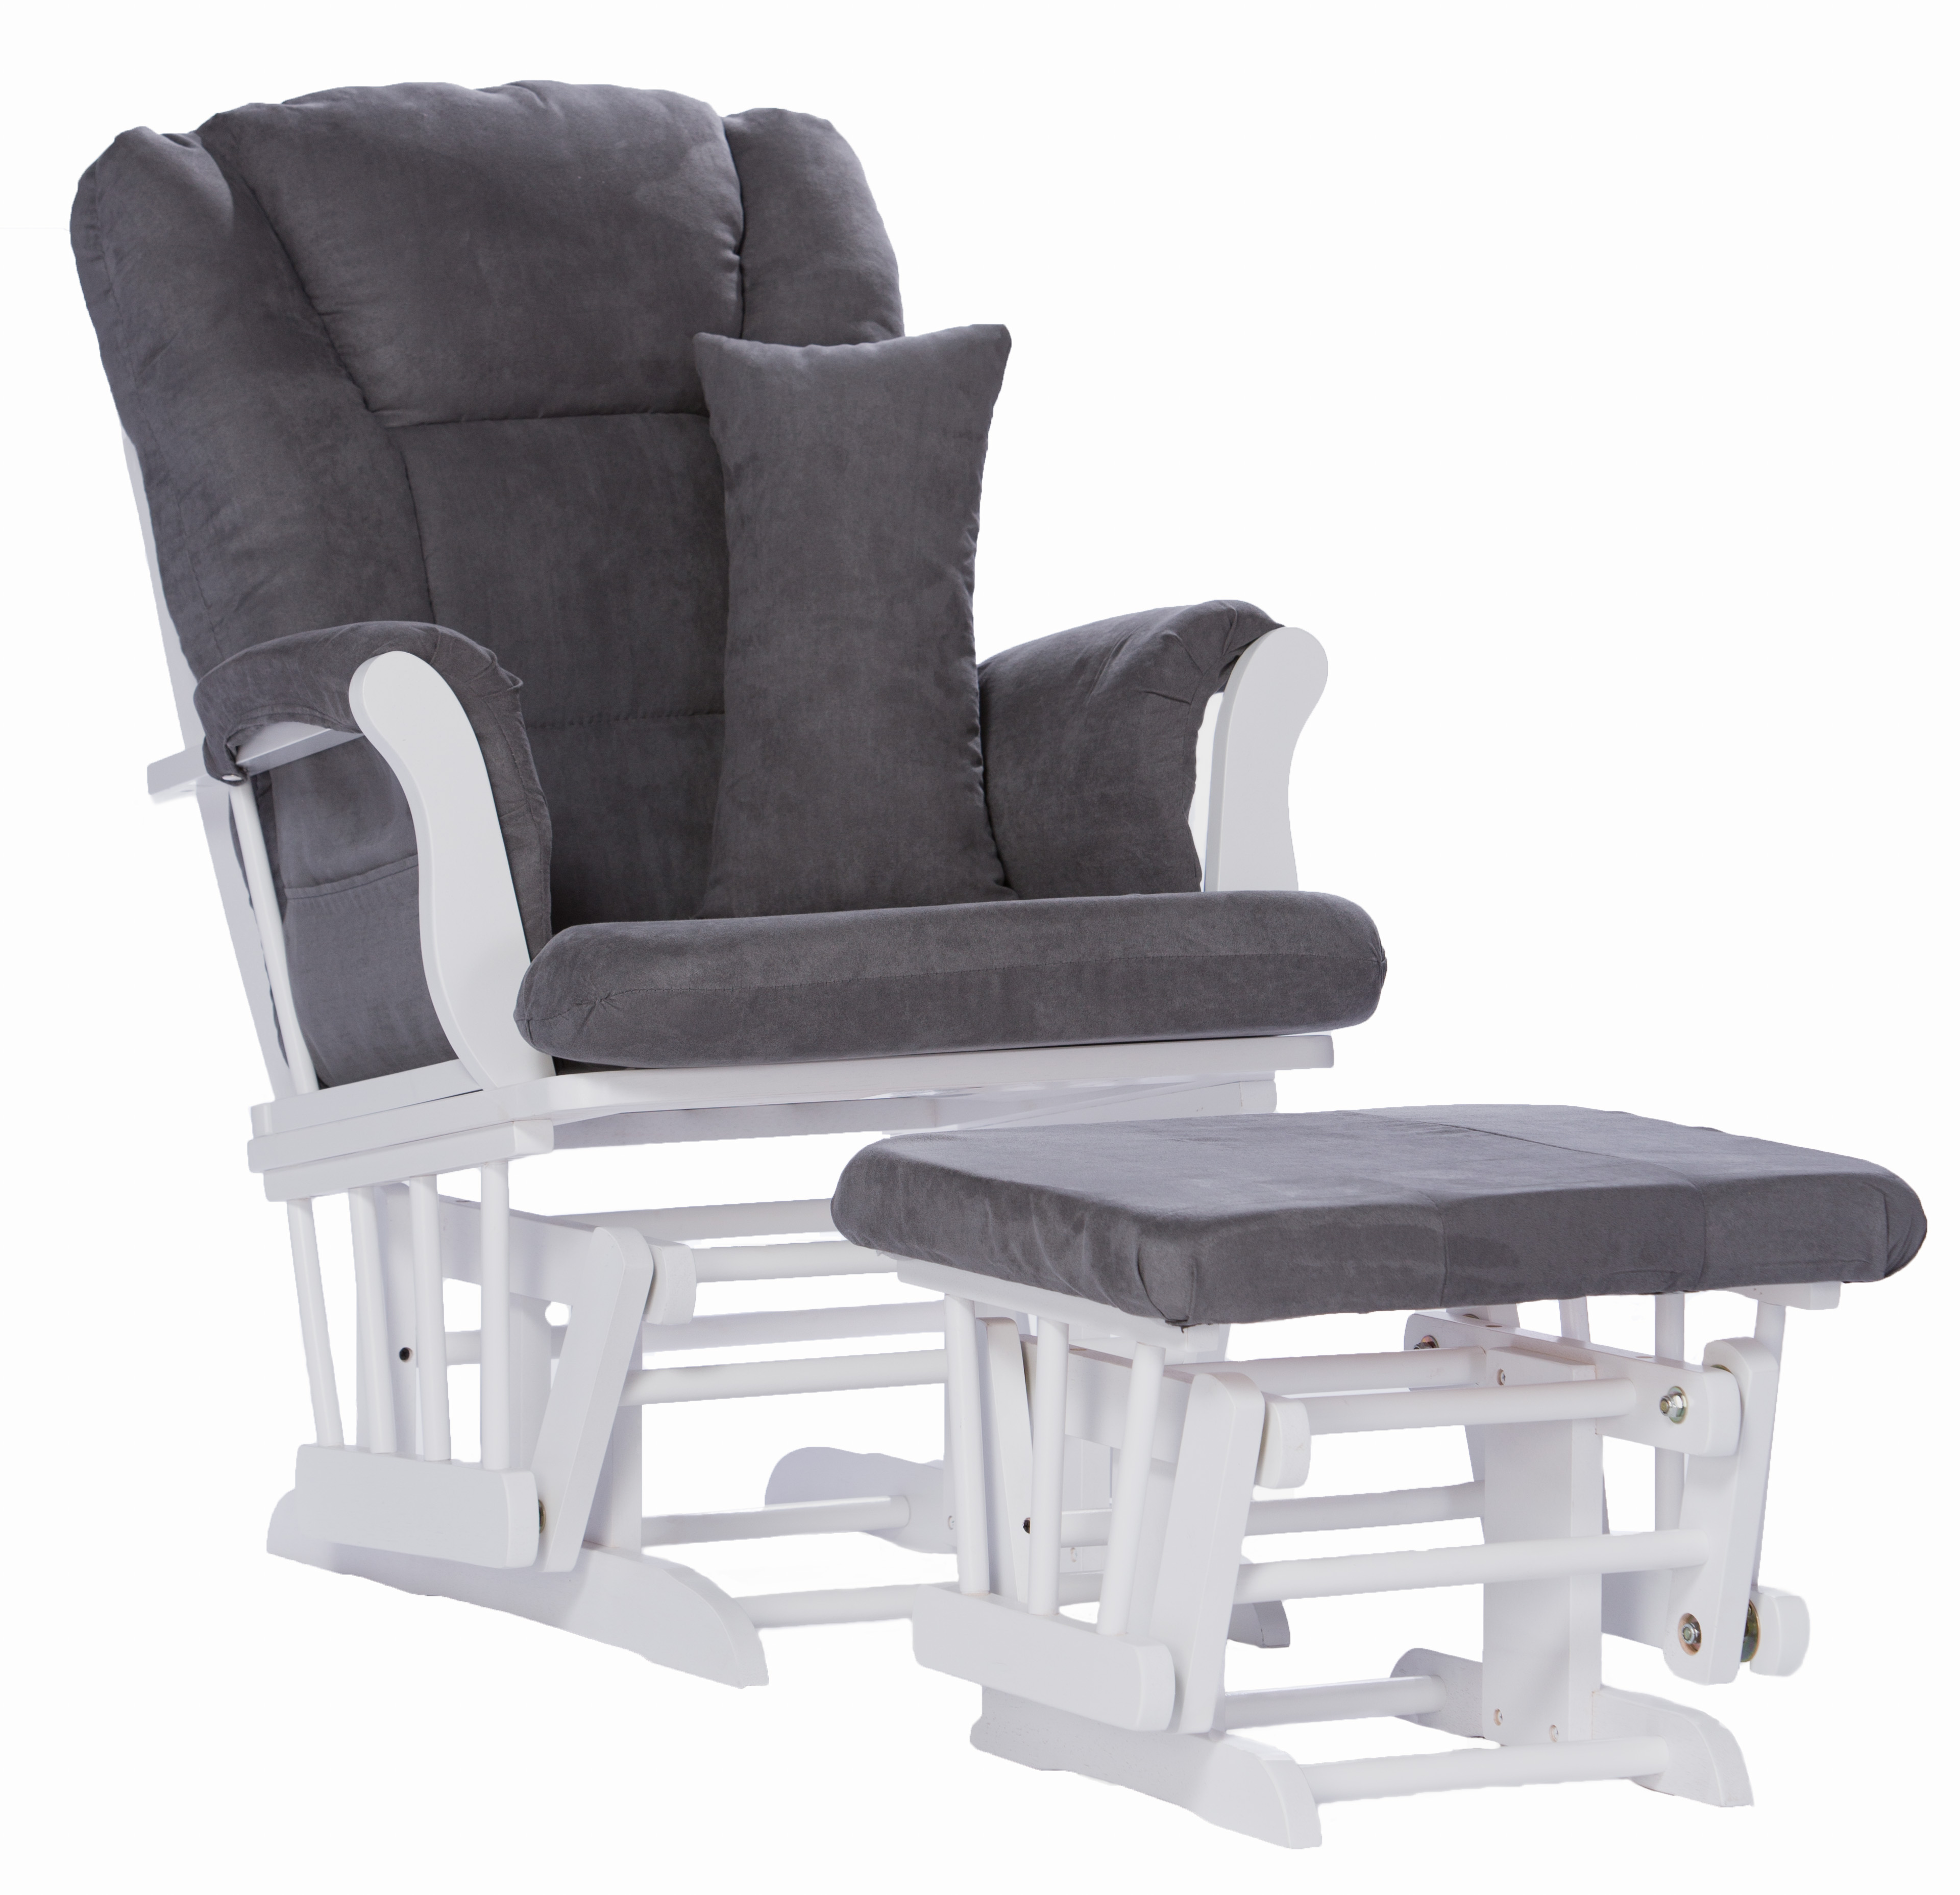 Storkcraft Tuscany Glider and Ottoman with Lumbar Pillow, White Finish with Gray Cushions